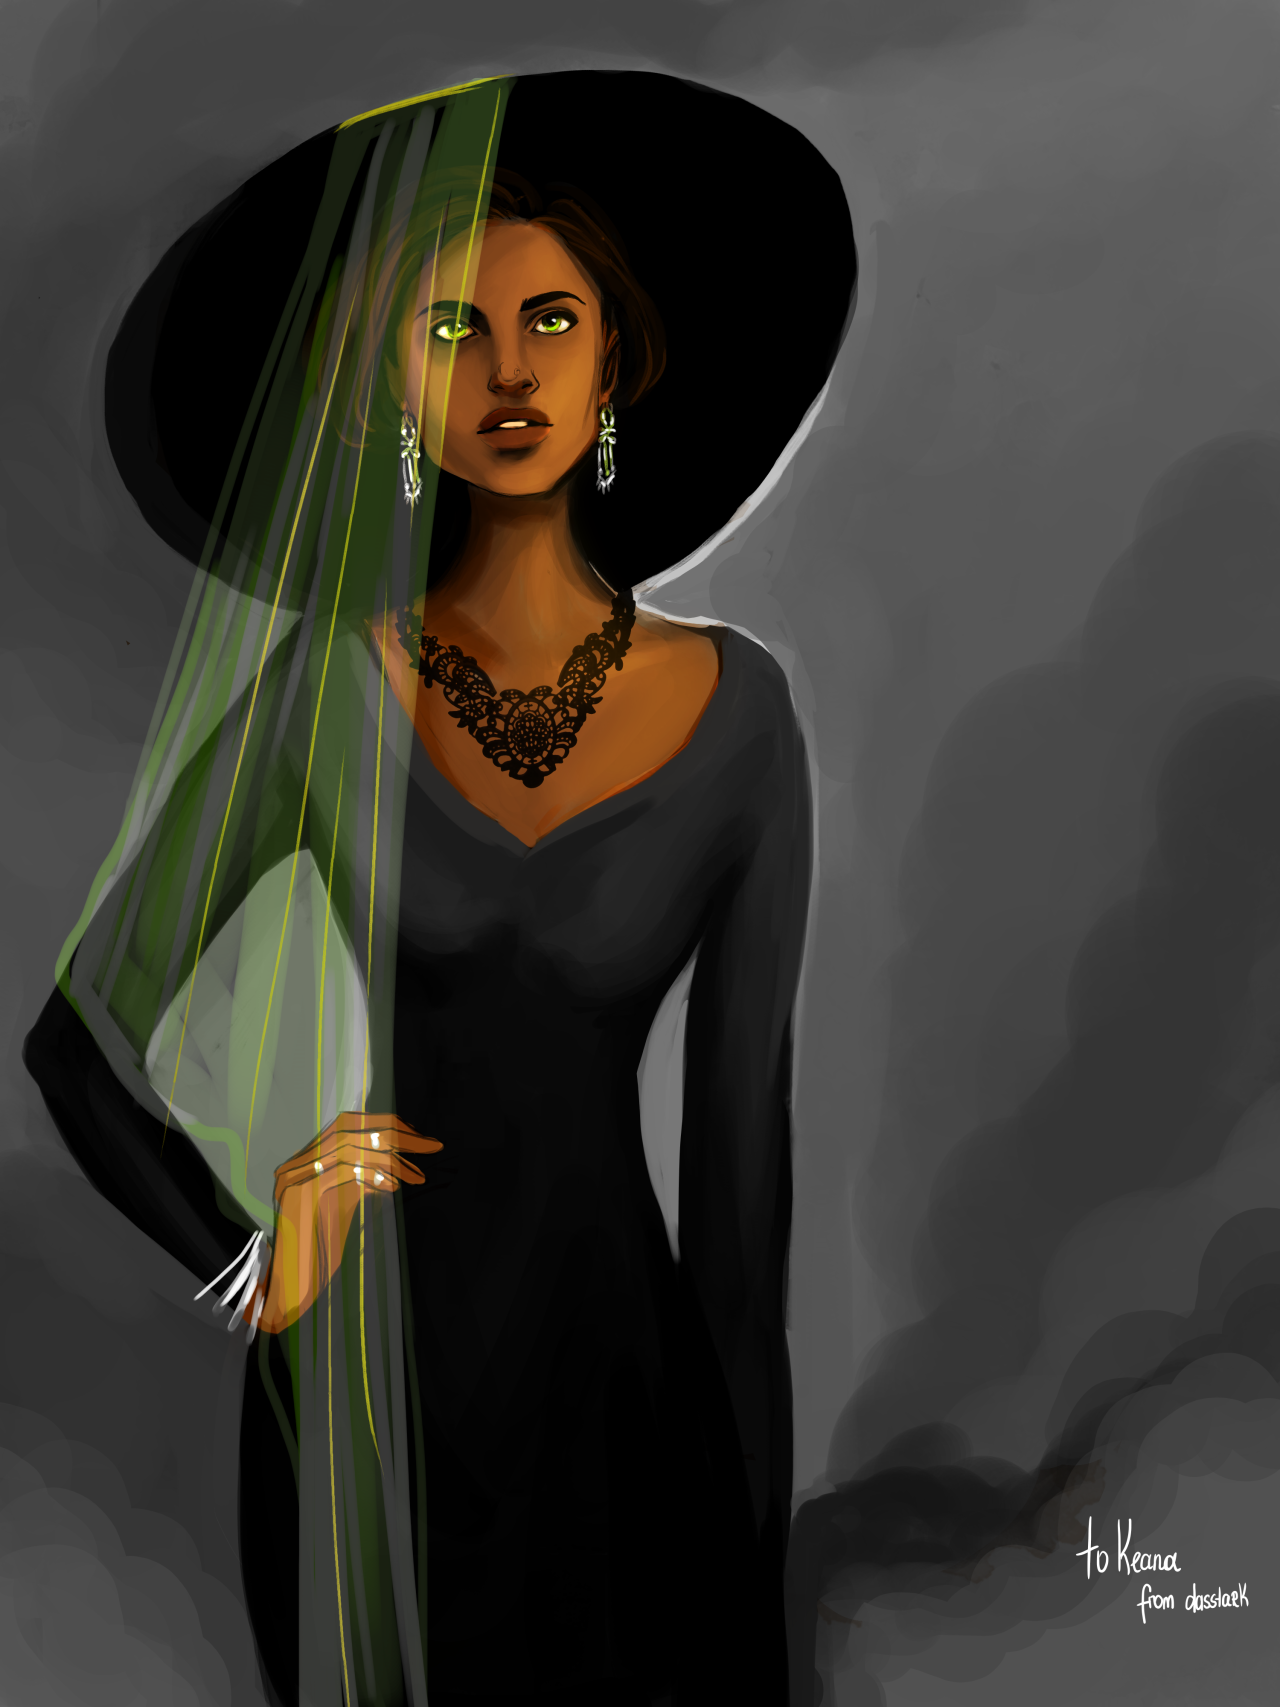 Thosebizzareserpents Hp Commision From Dasstark Slytherin Student Tracey Davis She Is More Than What I Imagined Oh My Slytherin Guys Disney Princess